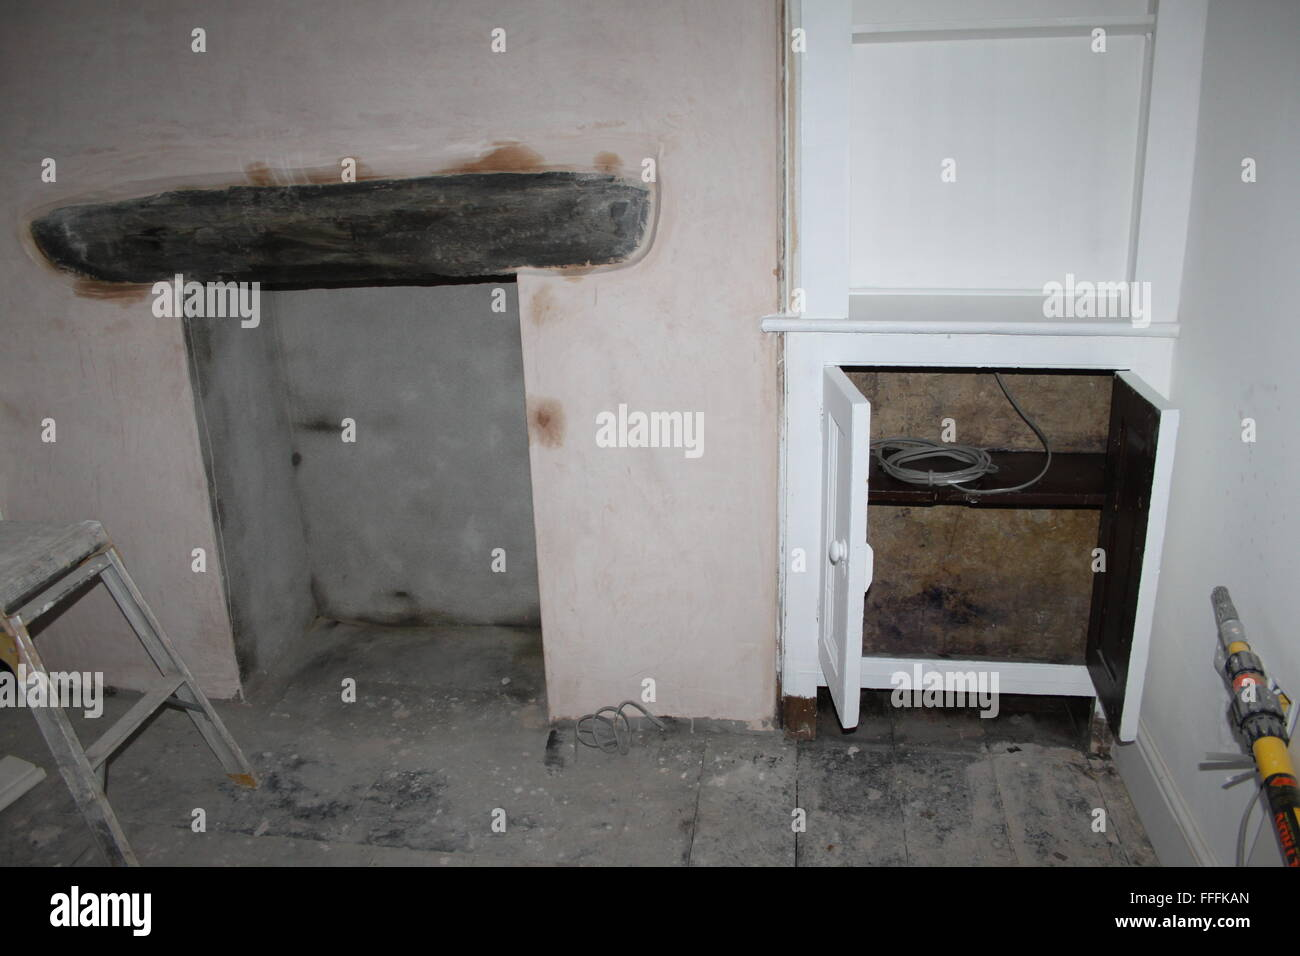 New plaster on walls in building renovation interior - Stock Image